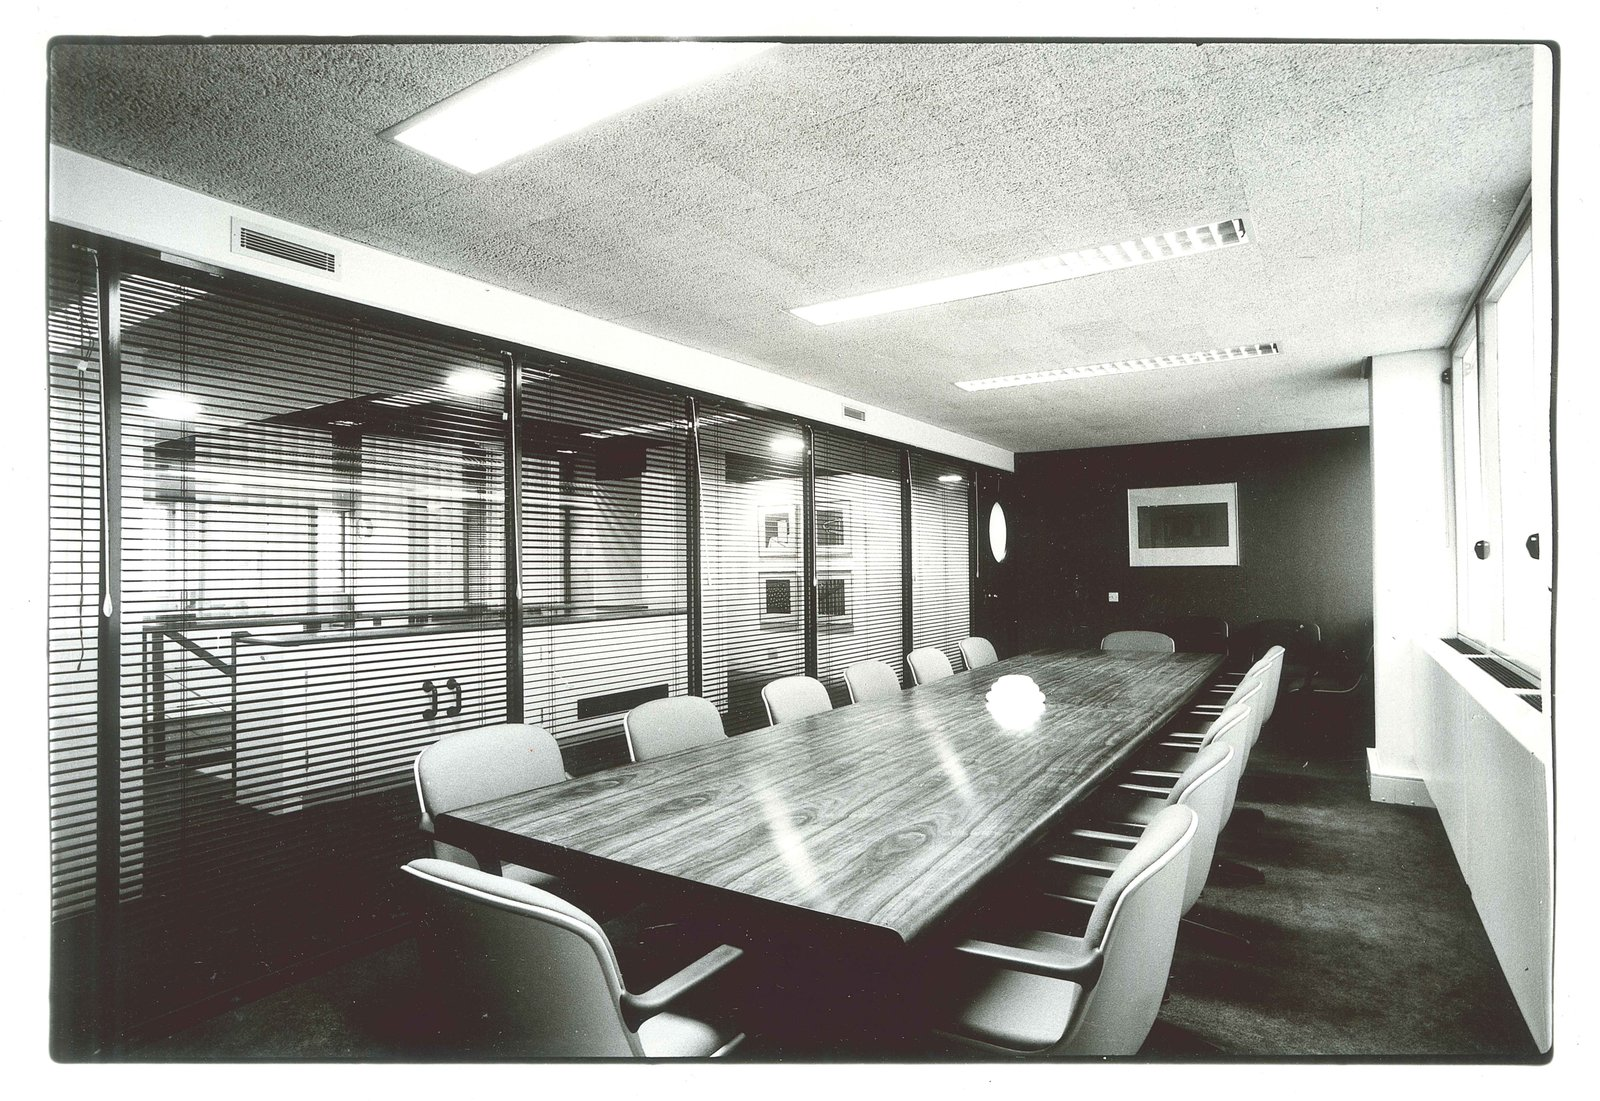 Booker McConnell Head Office  Completed in 1980, this interior overhaul was one of many Zeev Aram & Associates interior design projects.  Office by Tiwat from ARAM at 50: Golden Anniversary for a London Design Icon